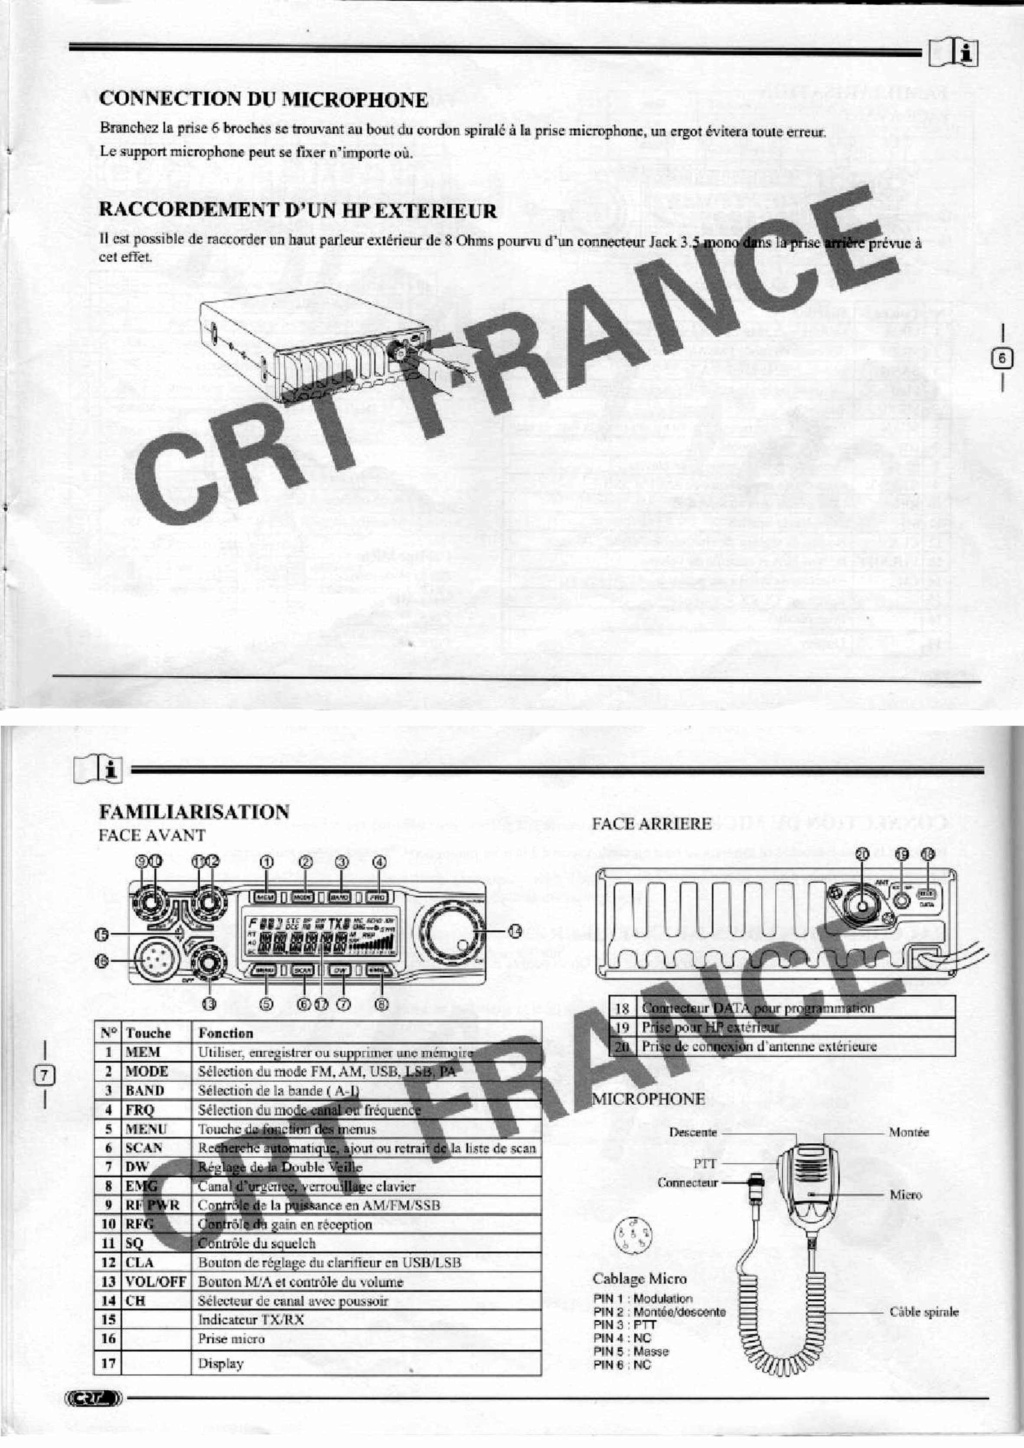 CRT SS 9900 v4 (Mobile) - Page 16 Feuill32